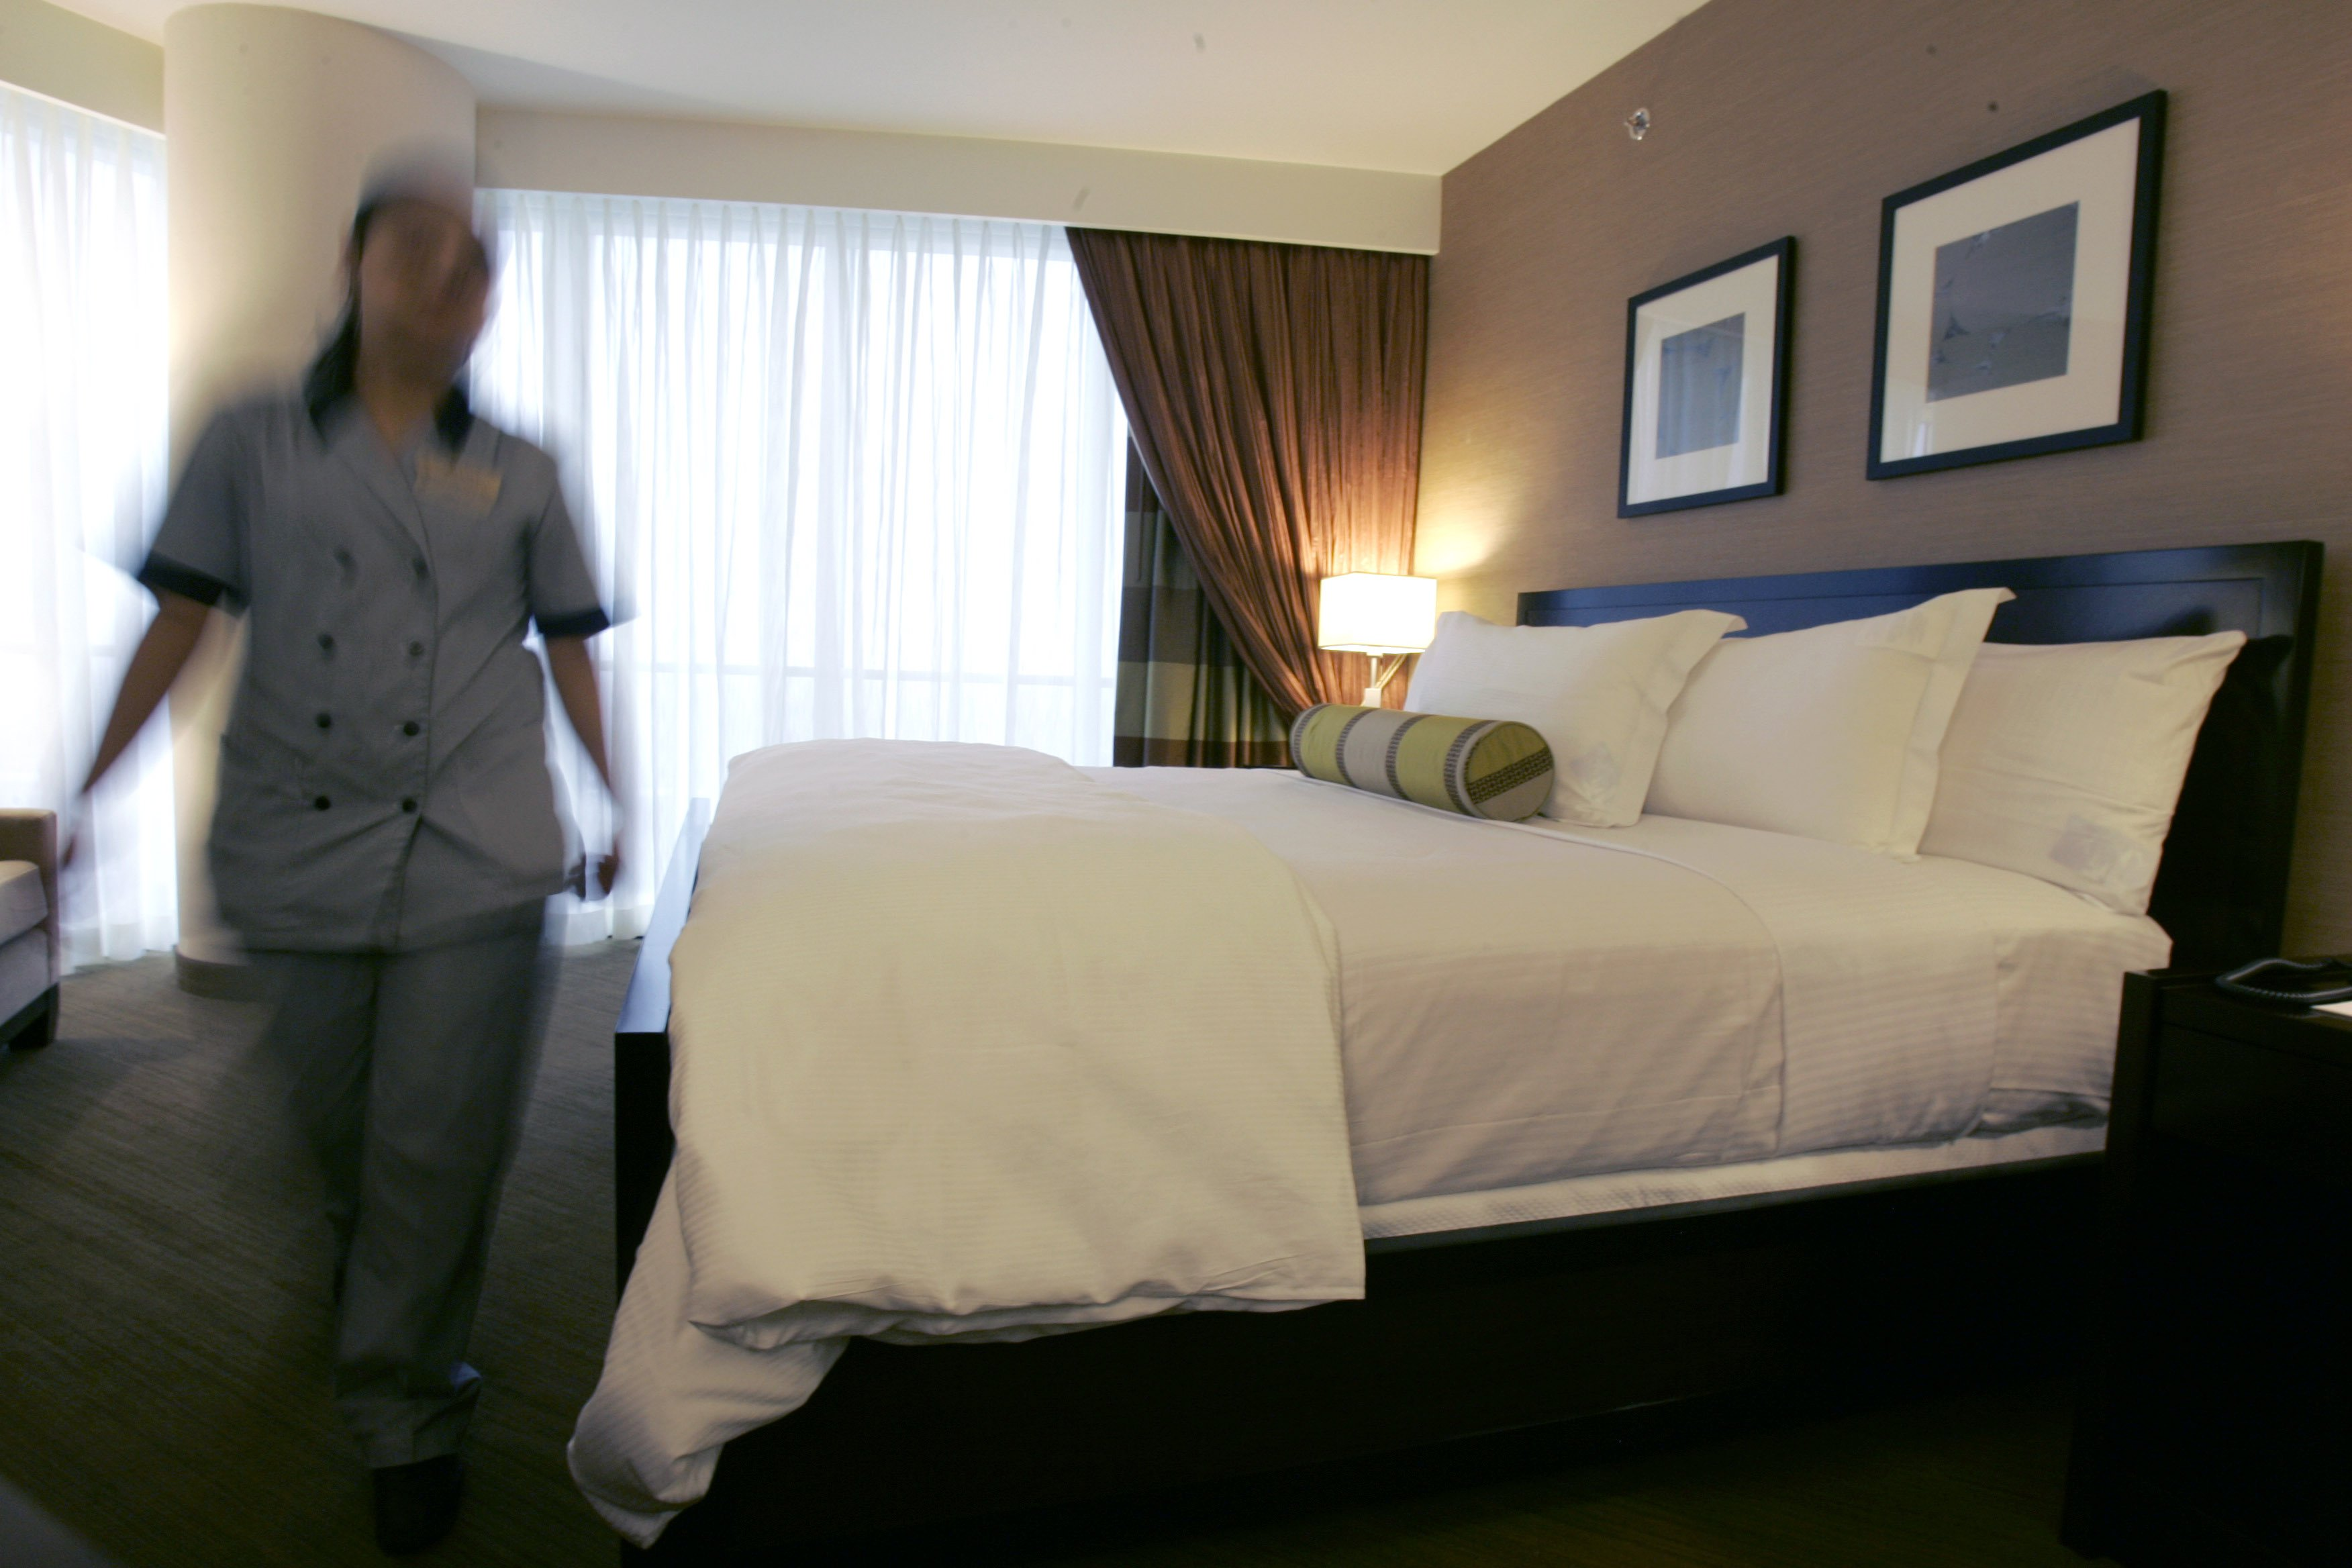 Prime Hotel Maids May Get Panic Buttons In New Jersey Whyy Download Free Architecture Designs Sospemadebymaigaardcom